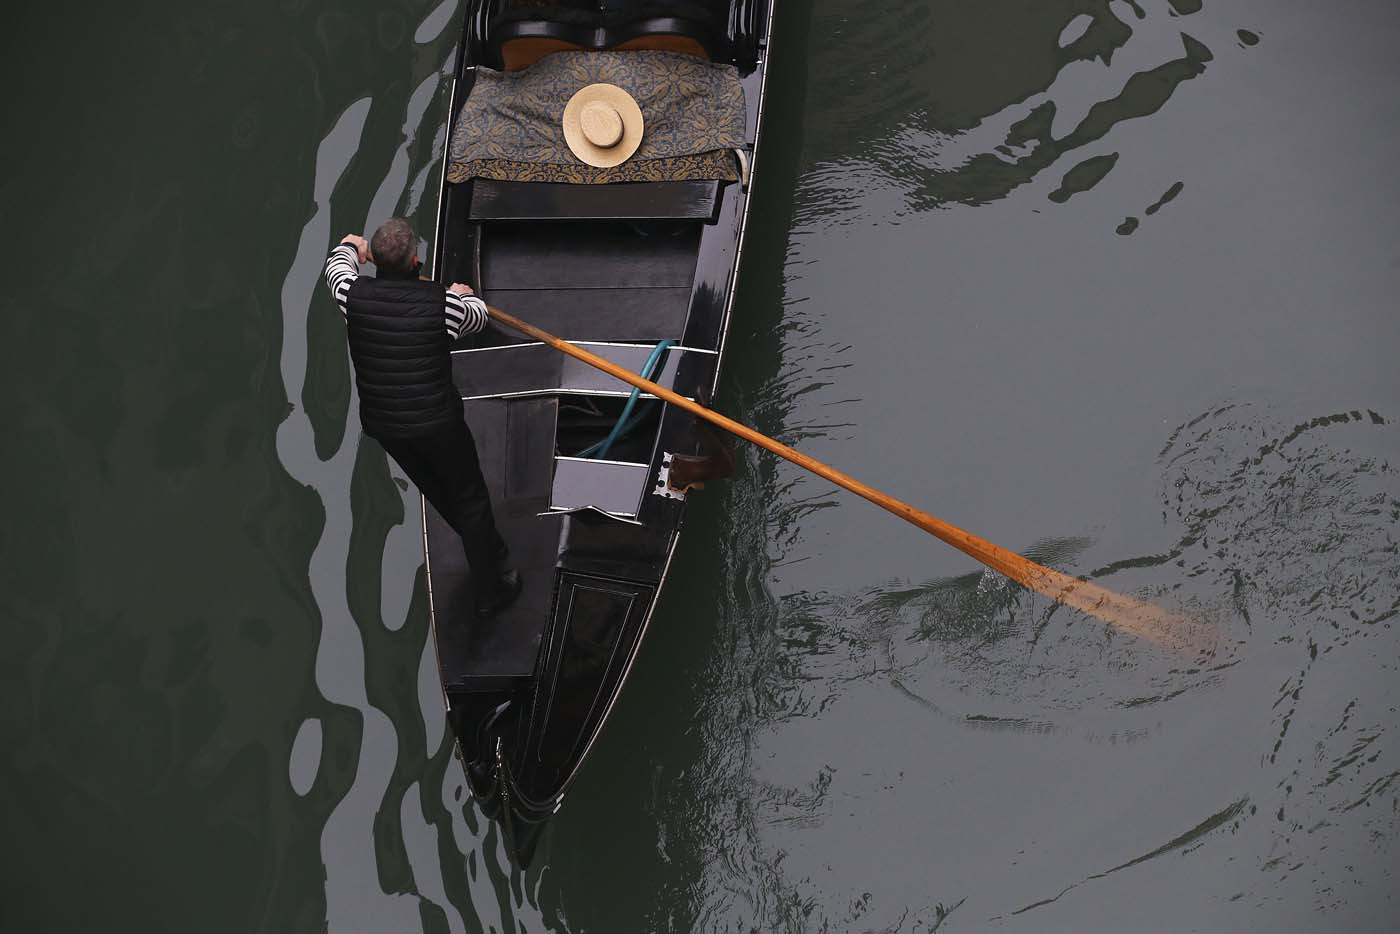 A gondolier rows along a canal near St. Mark's Square in Venice January 30, 2016. REUTERS/Alessandro Bianchi